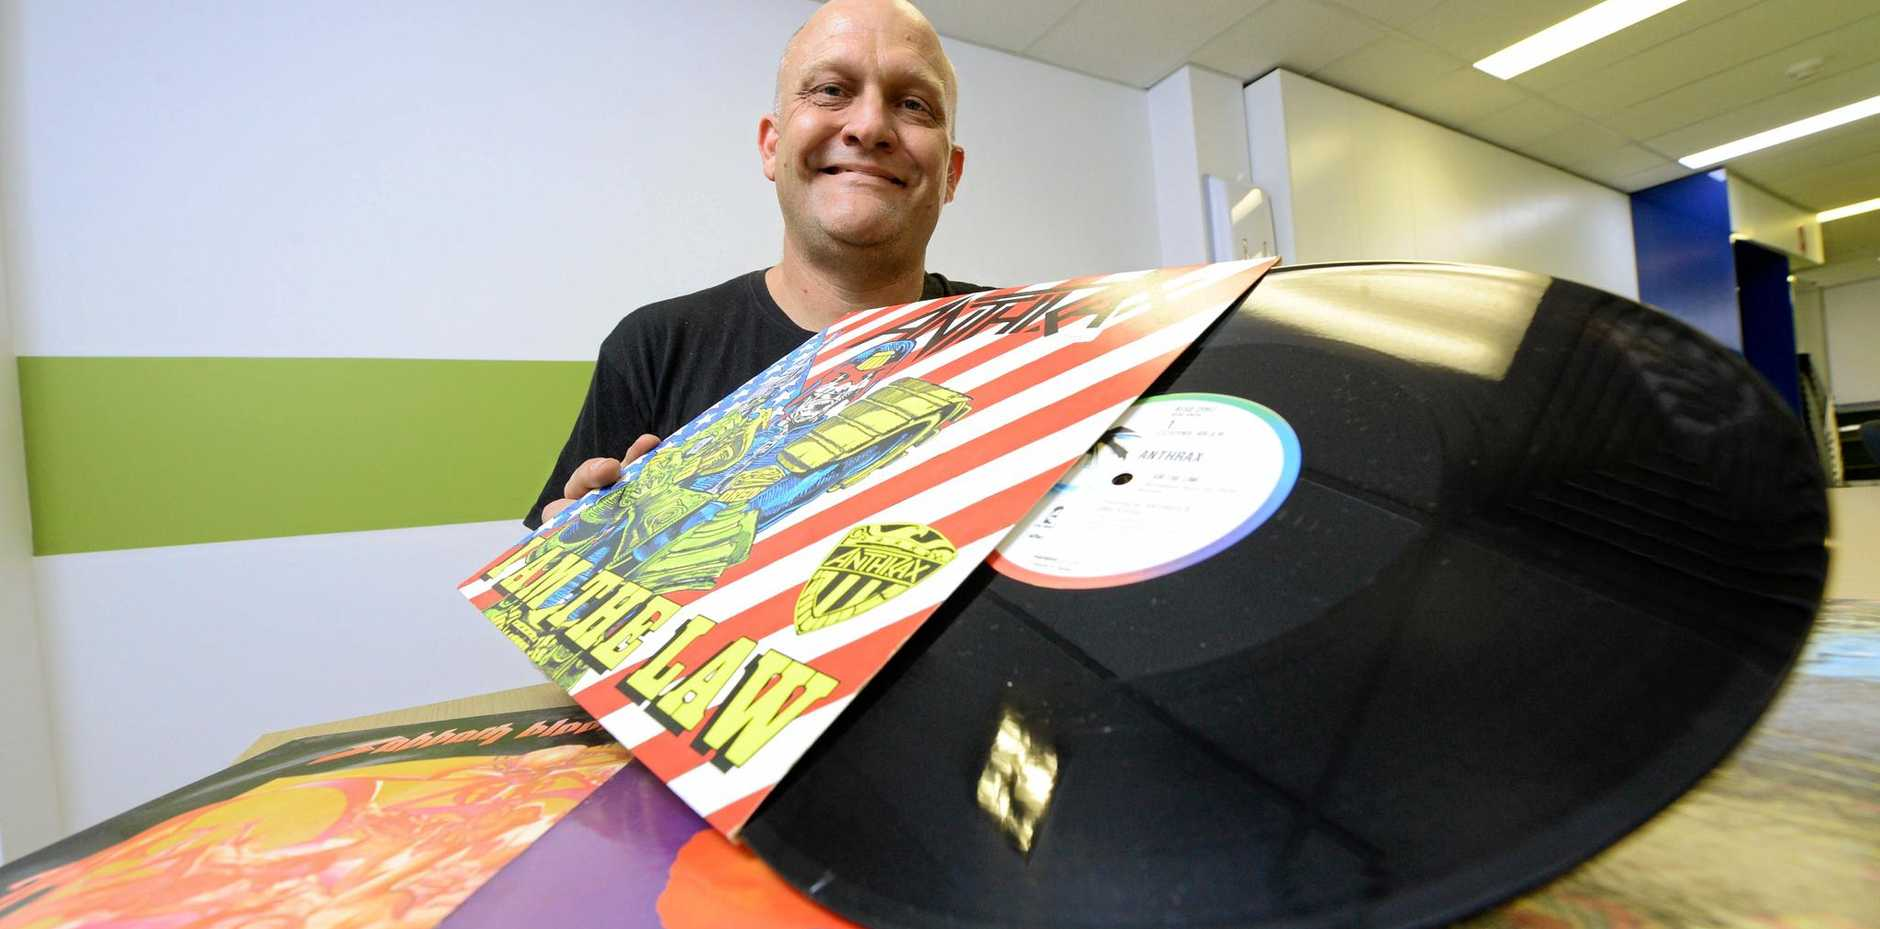 Jason Woodward is organising the Ipswich Records Fair at the Ipswich Showgrounds.